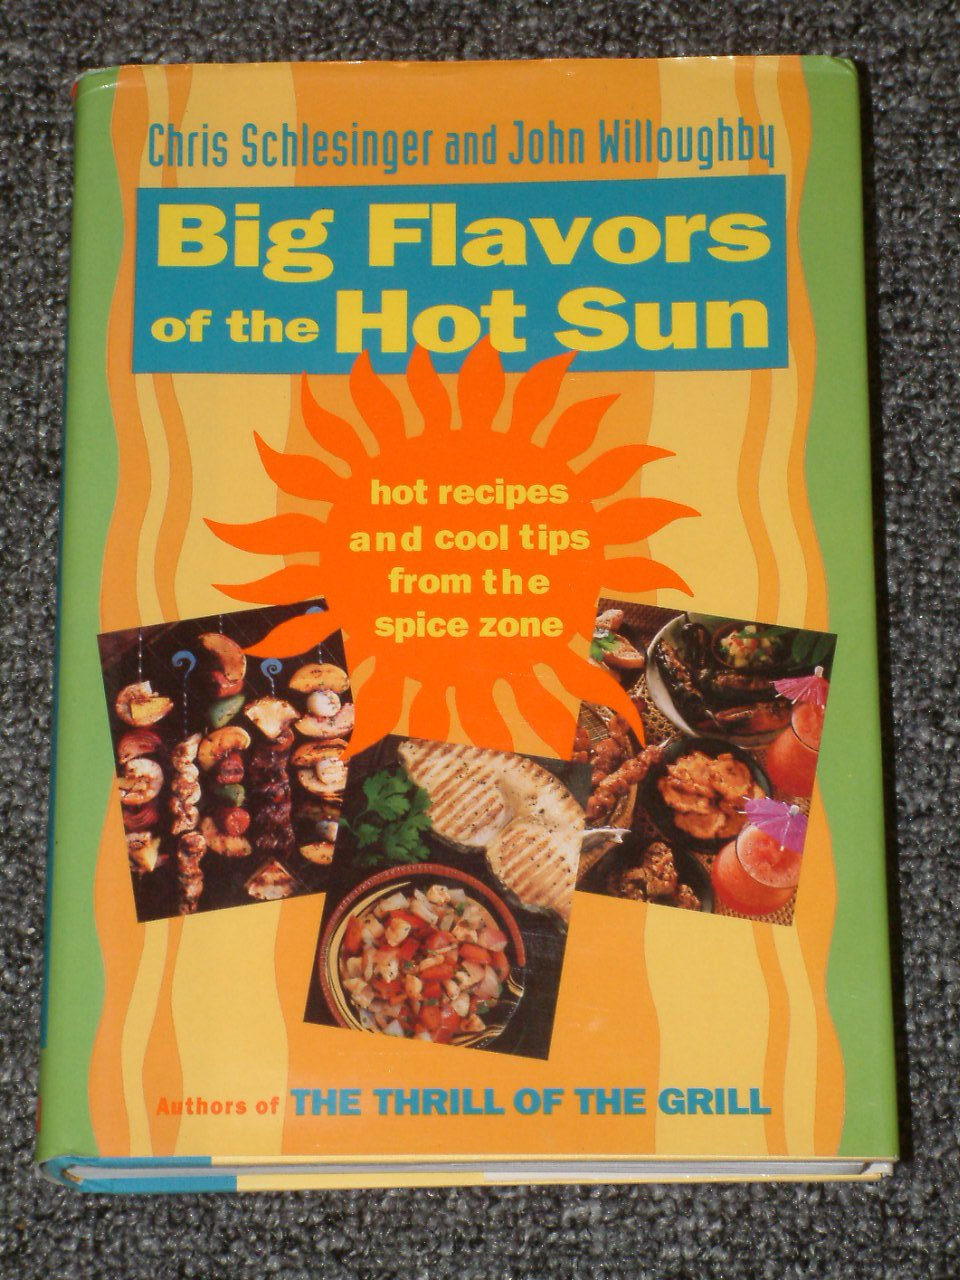 Big Flavors of the Hot Sun Cookbook by Chris Schlesinger and John Willoughby